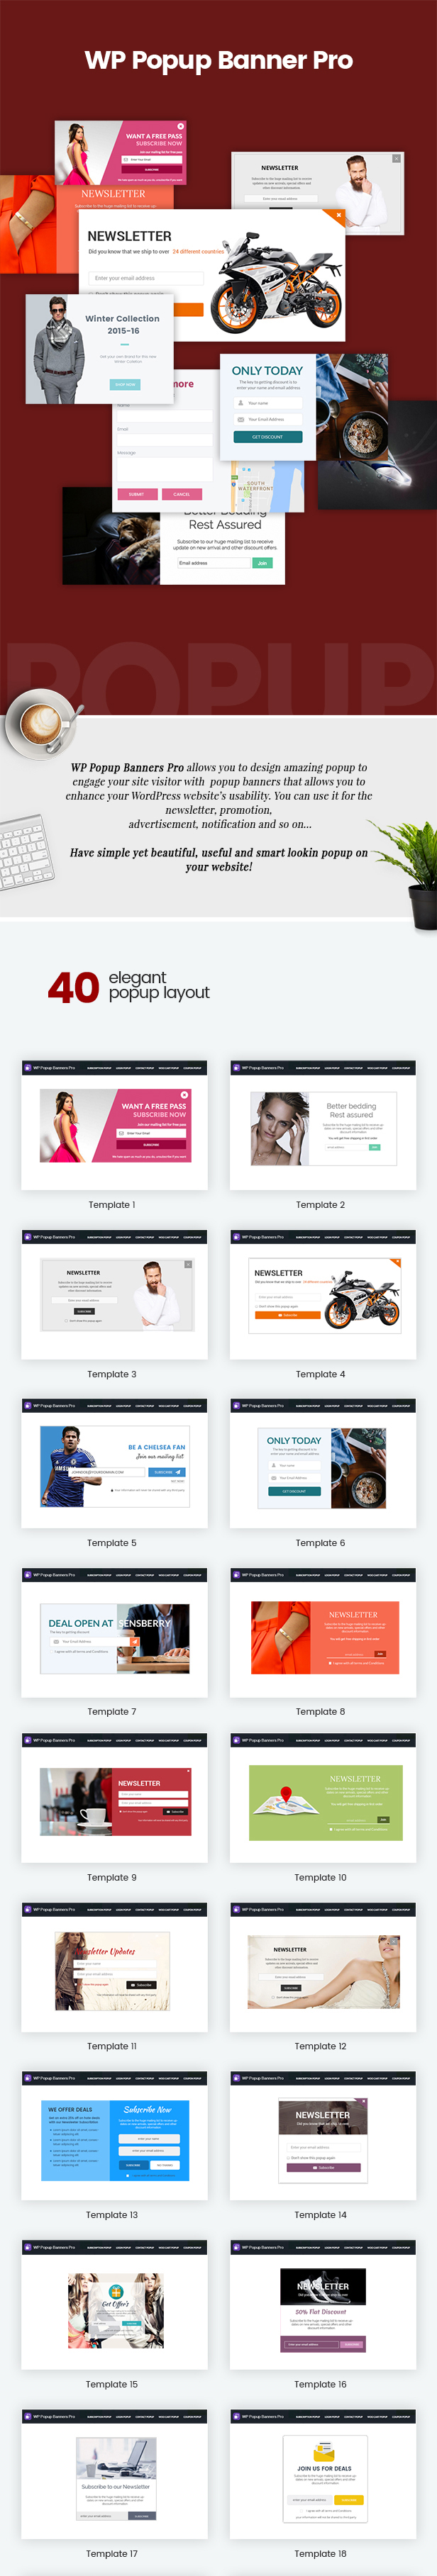 WP Popup Banners Pro - Ultimate popup plugin for WordPress - 1